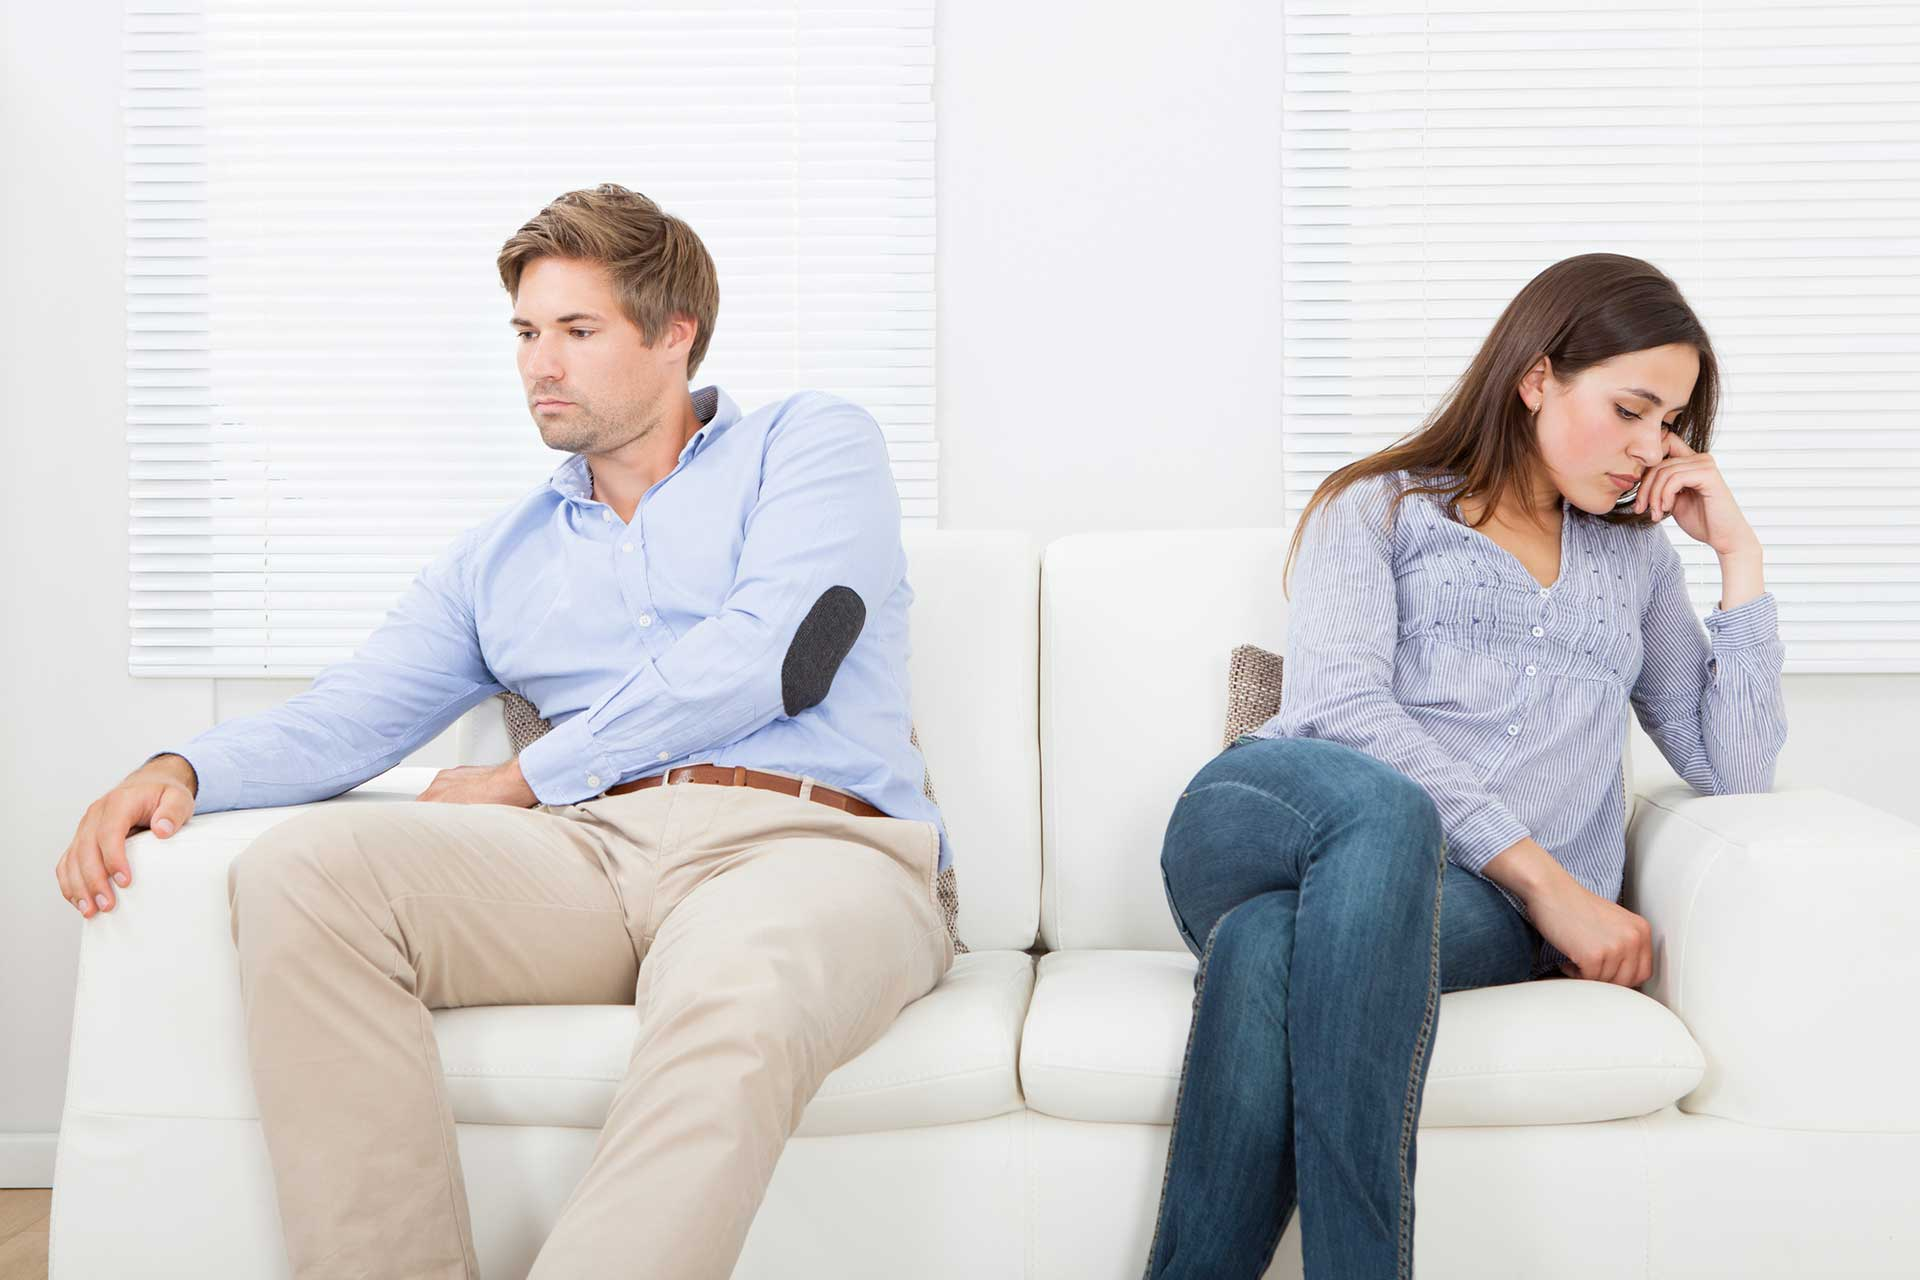 cohabitation during divorce, couple on couch separately